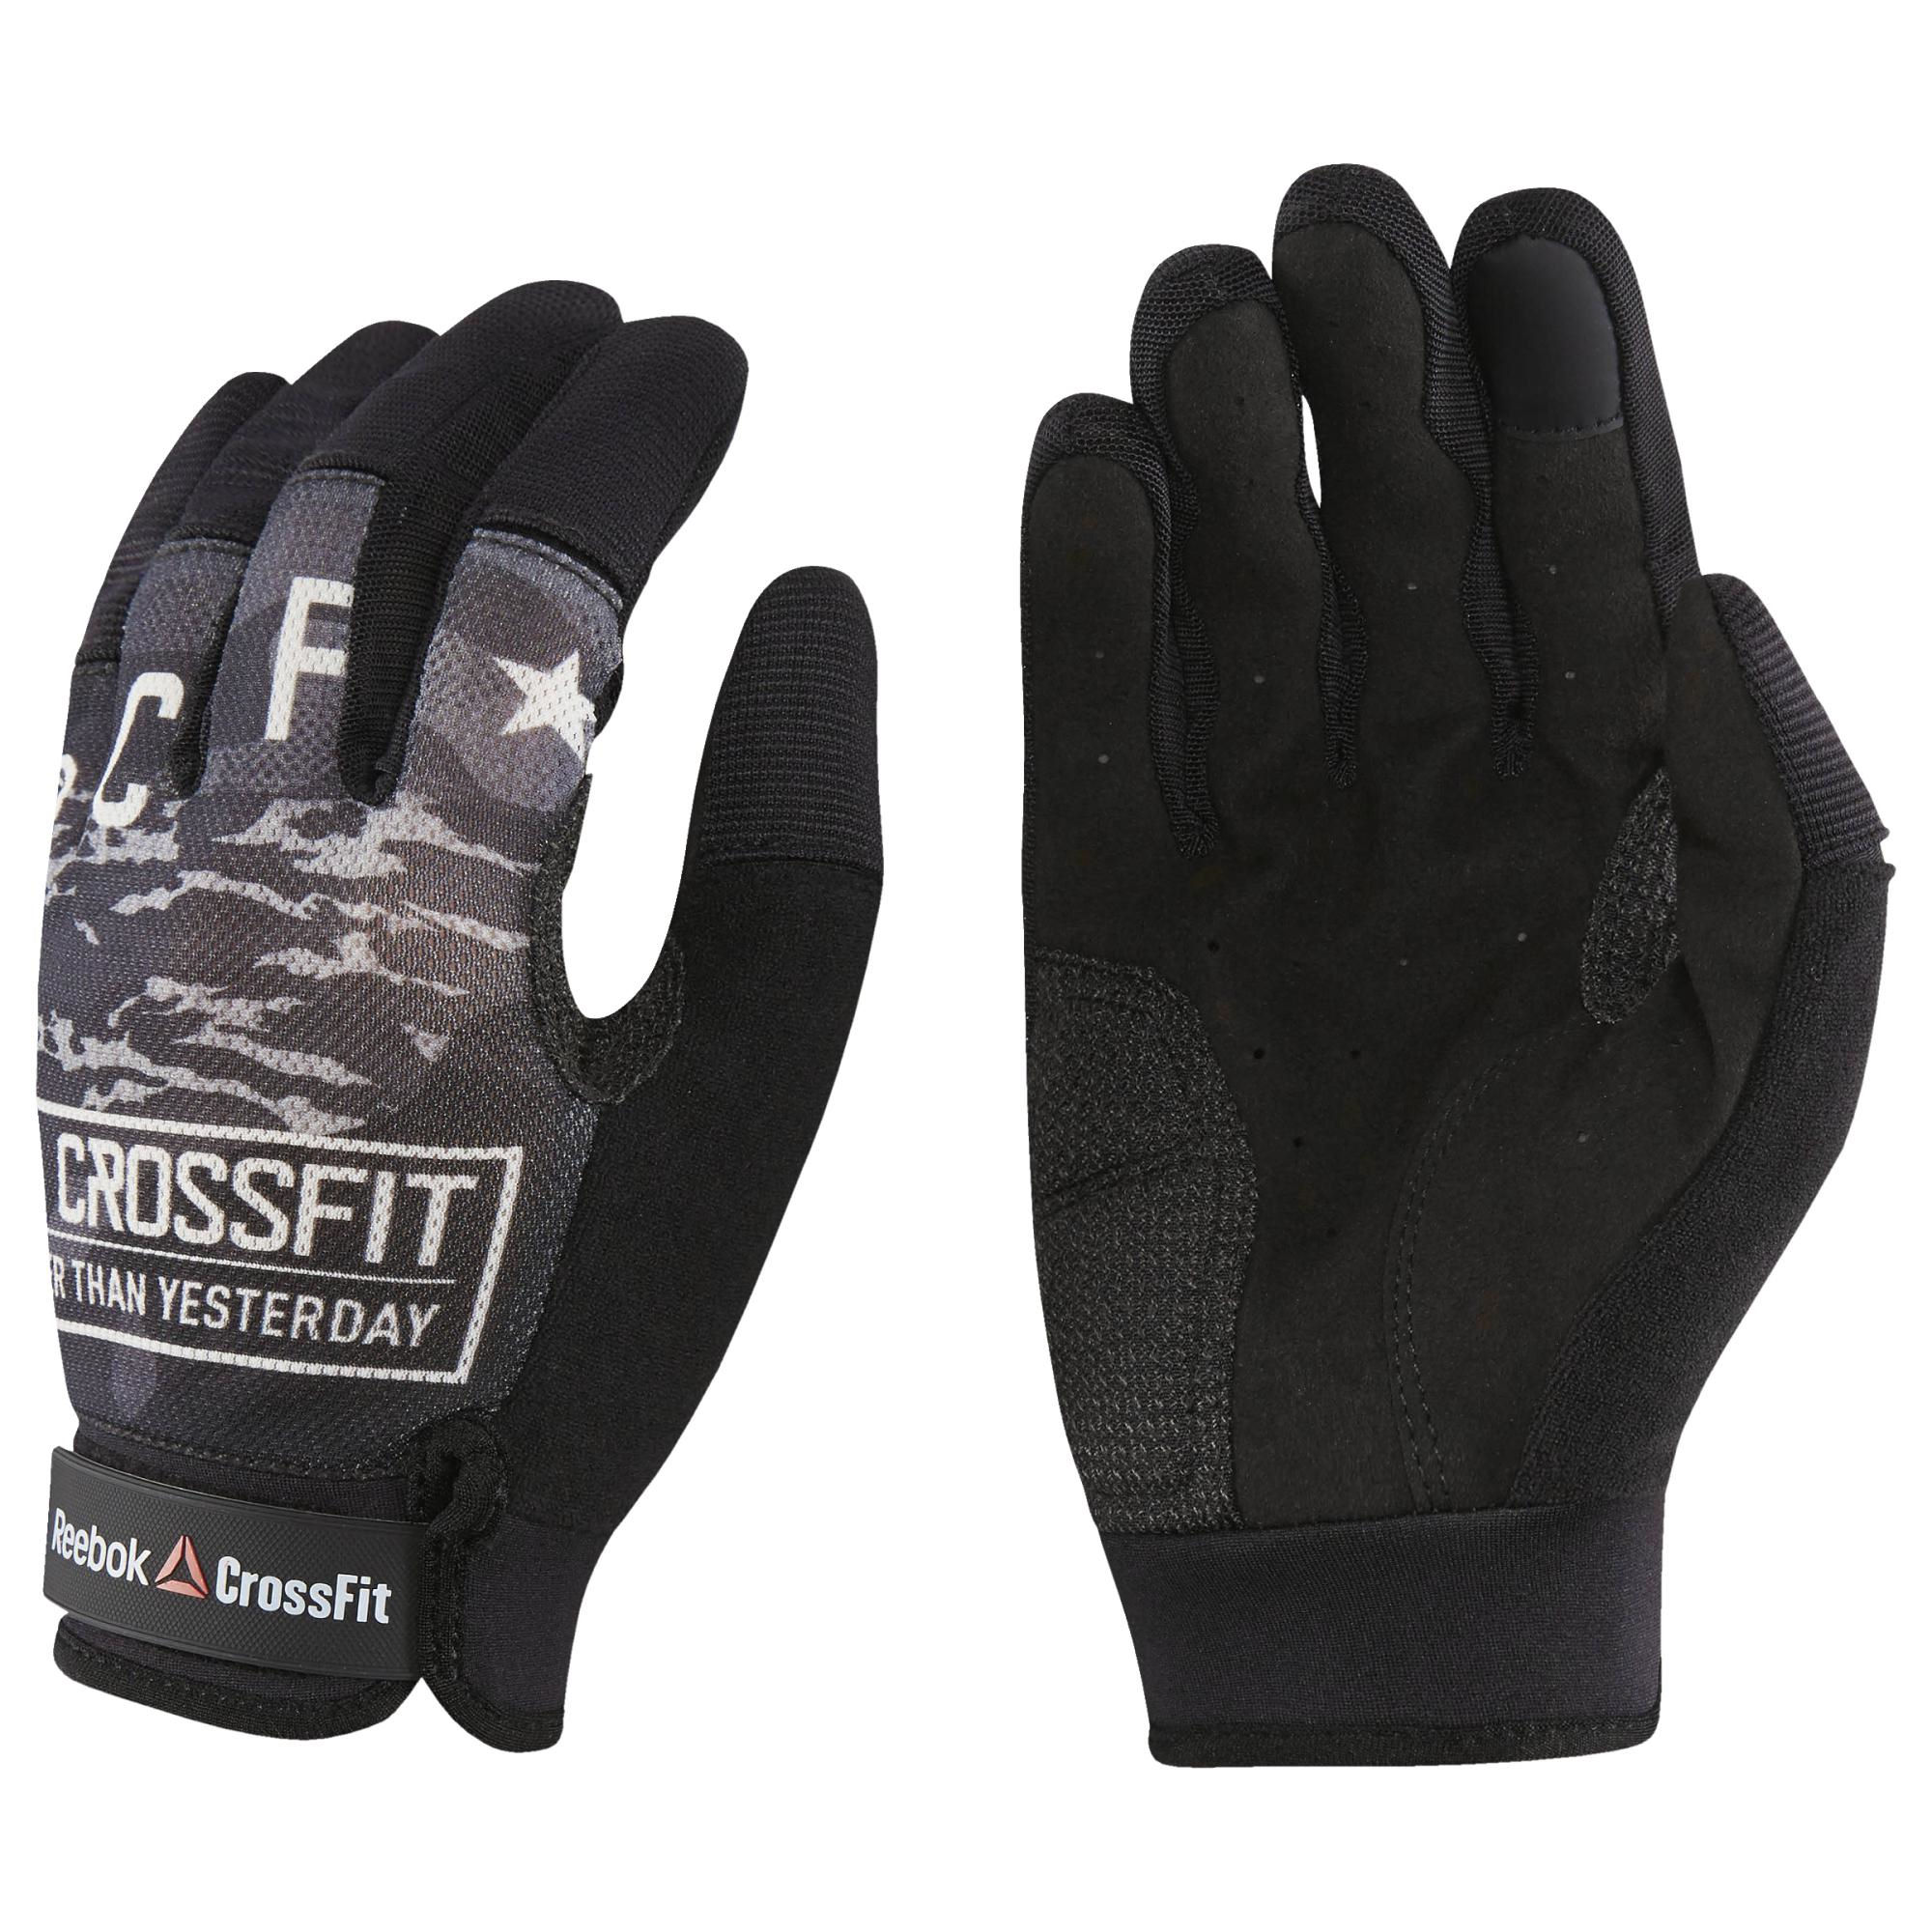 Reebok Crossfit Training Gloves: Reebok CrossFit Training Glove (SS16)